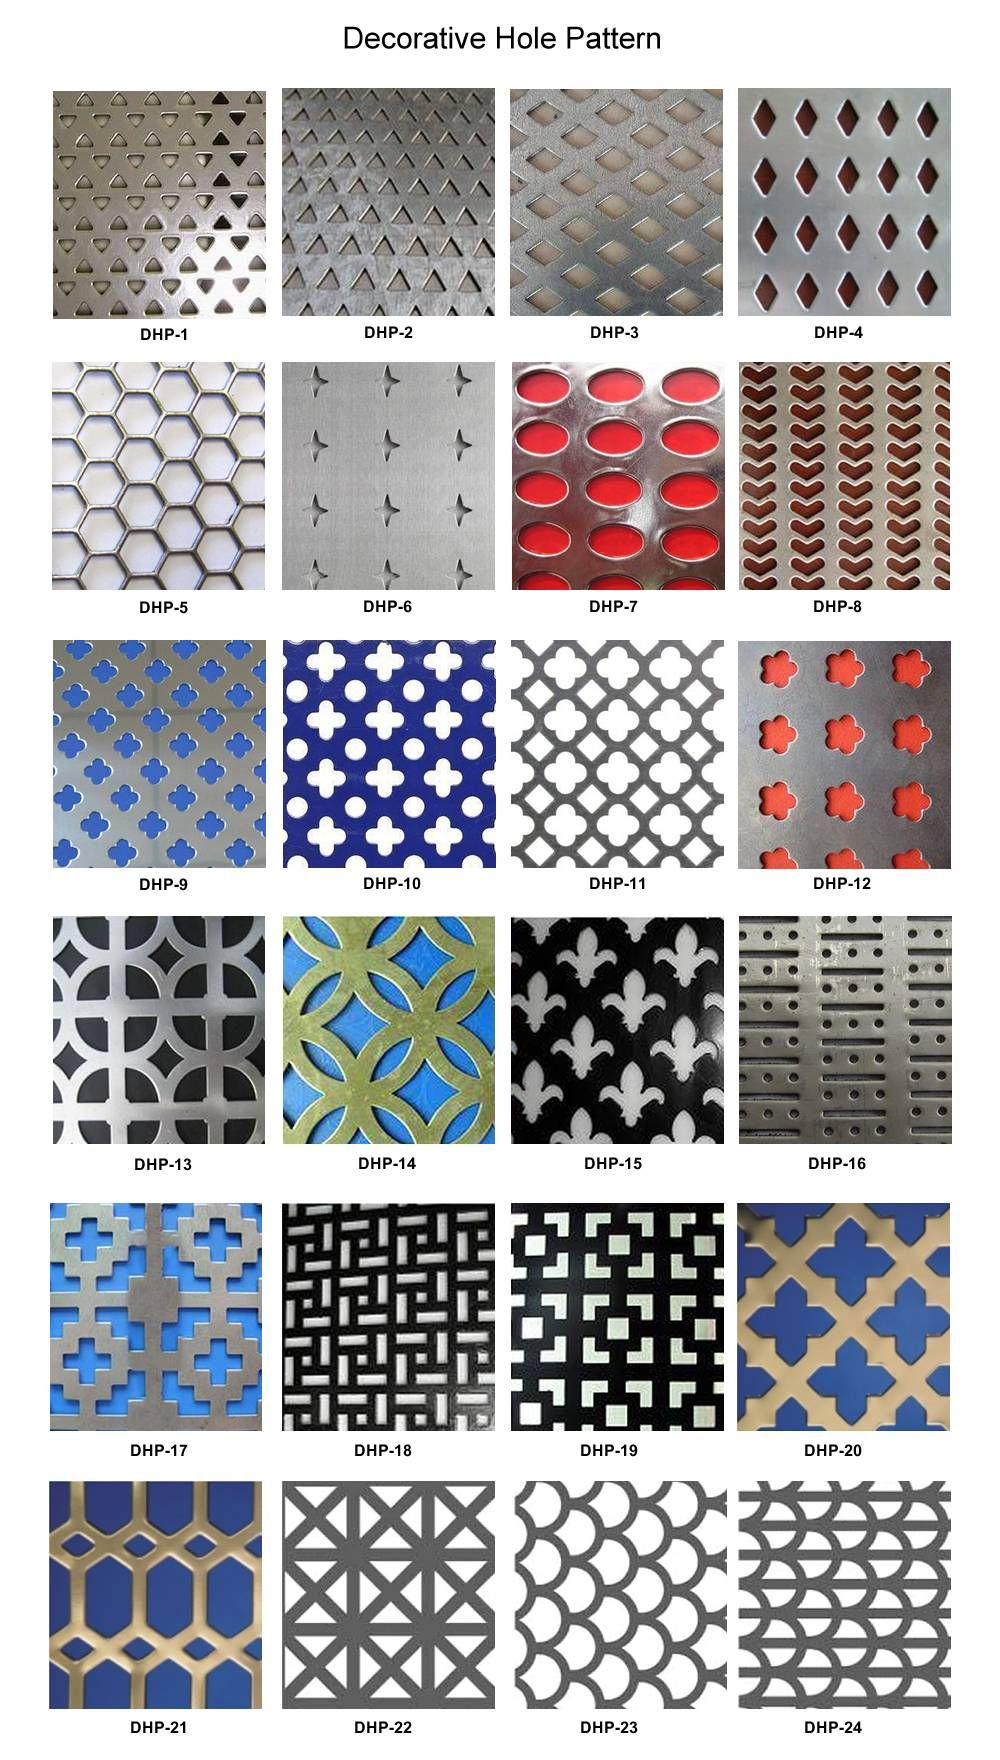 Twenty Four Patterns Of Holes For Decorative Perforated Sheets Decorative Metal Sheets Metal Sheet Design Decorative Metal Screen